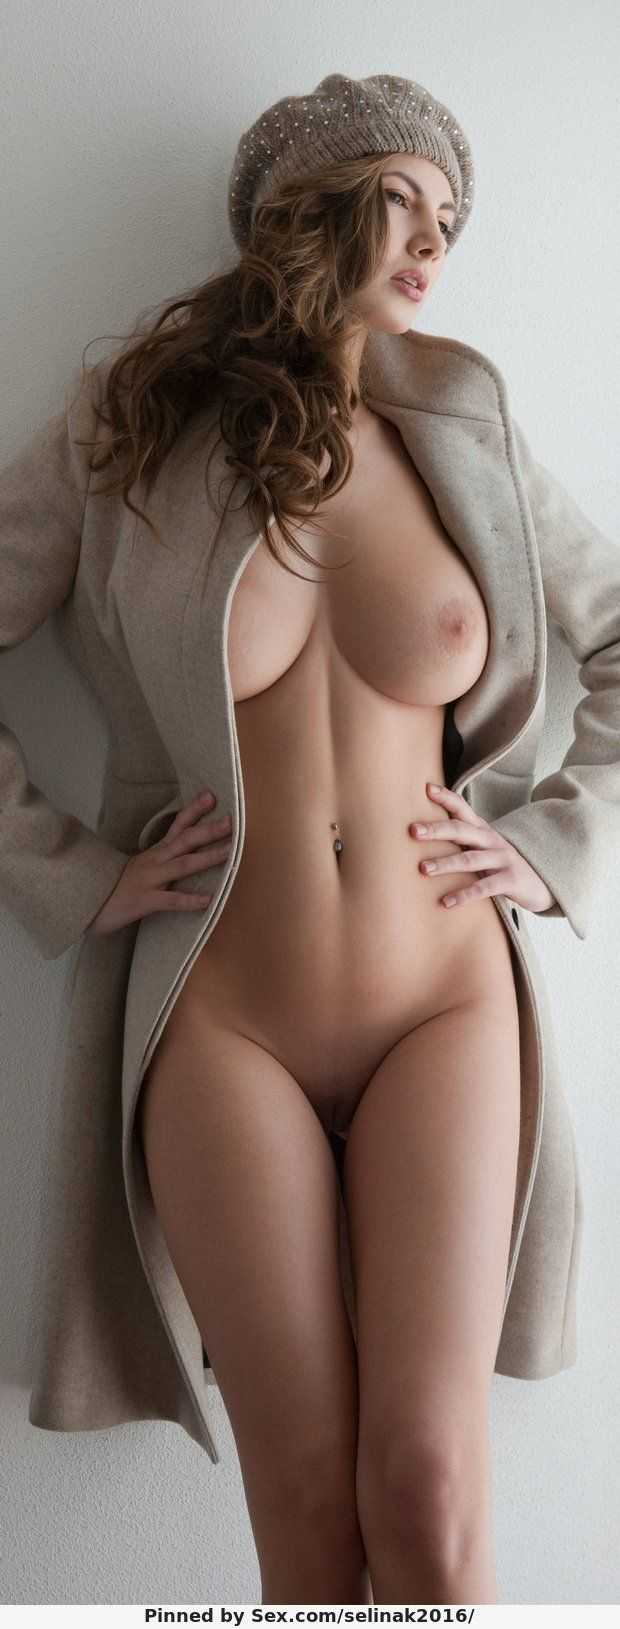 huge boobs white girl nude